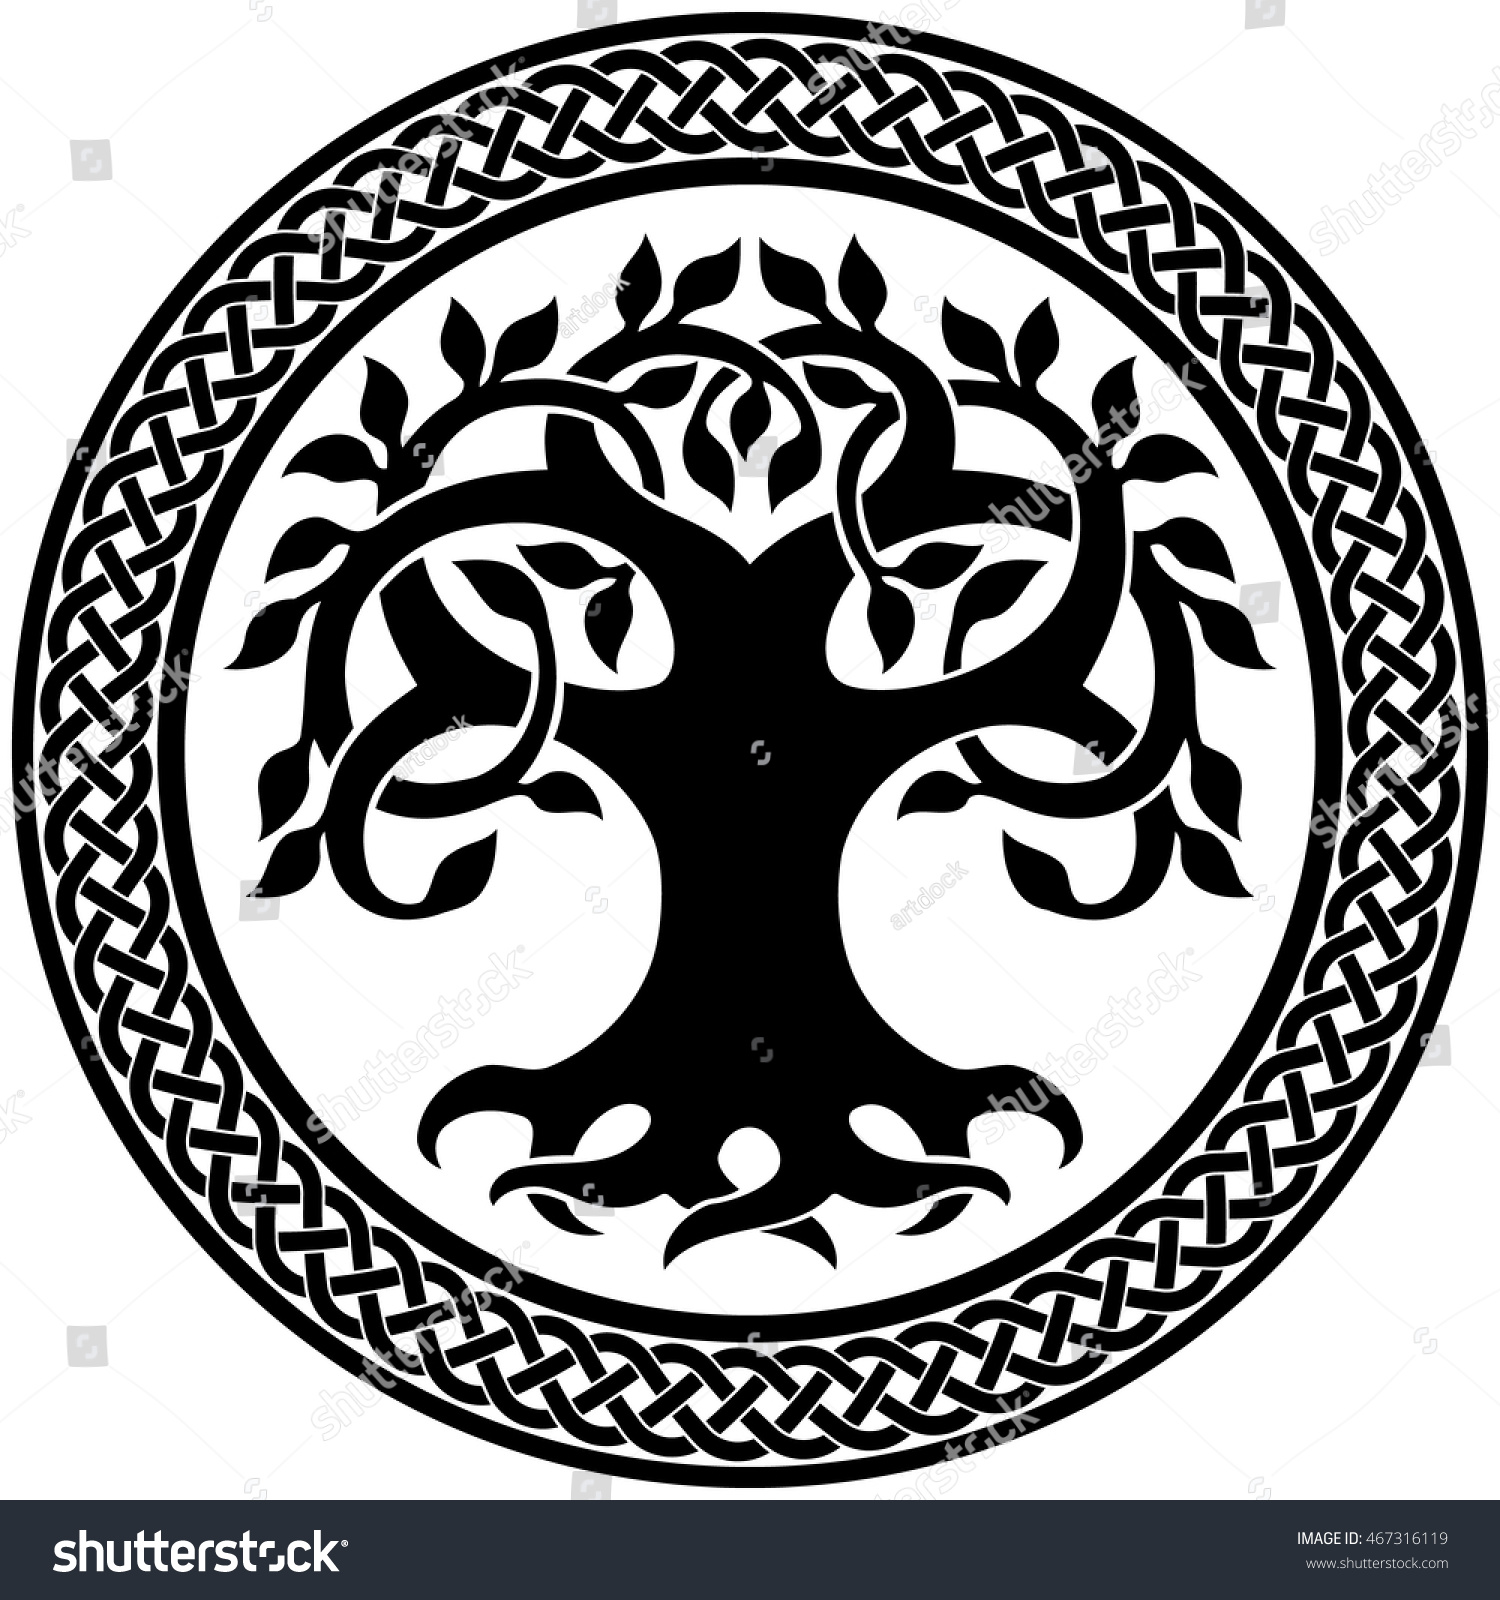 Tree of life ornament - Vector Ornament Decorative Round Celtic Tree Of Life With Circular Celtic Border